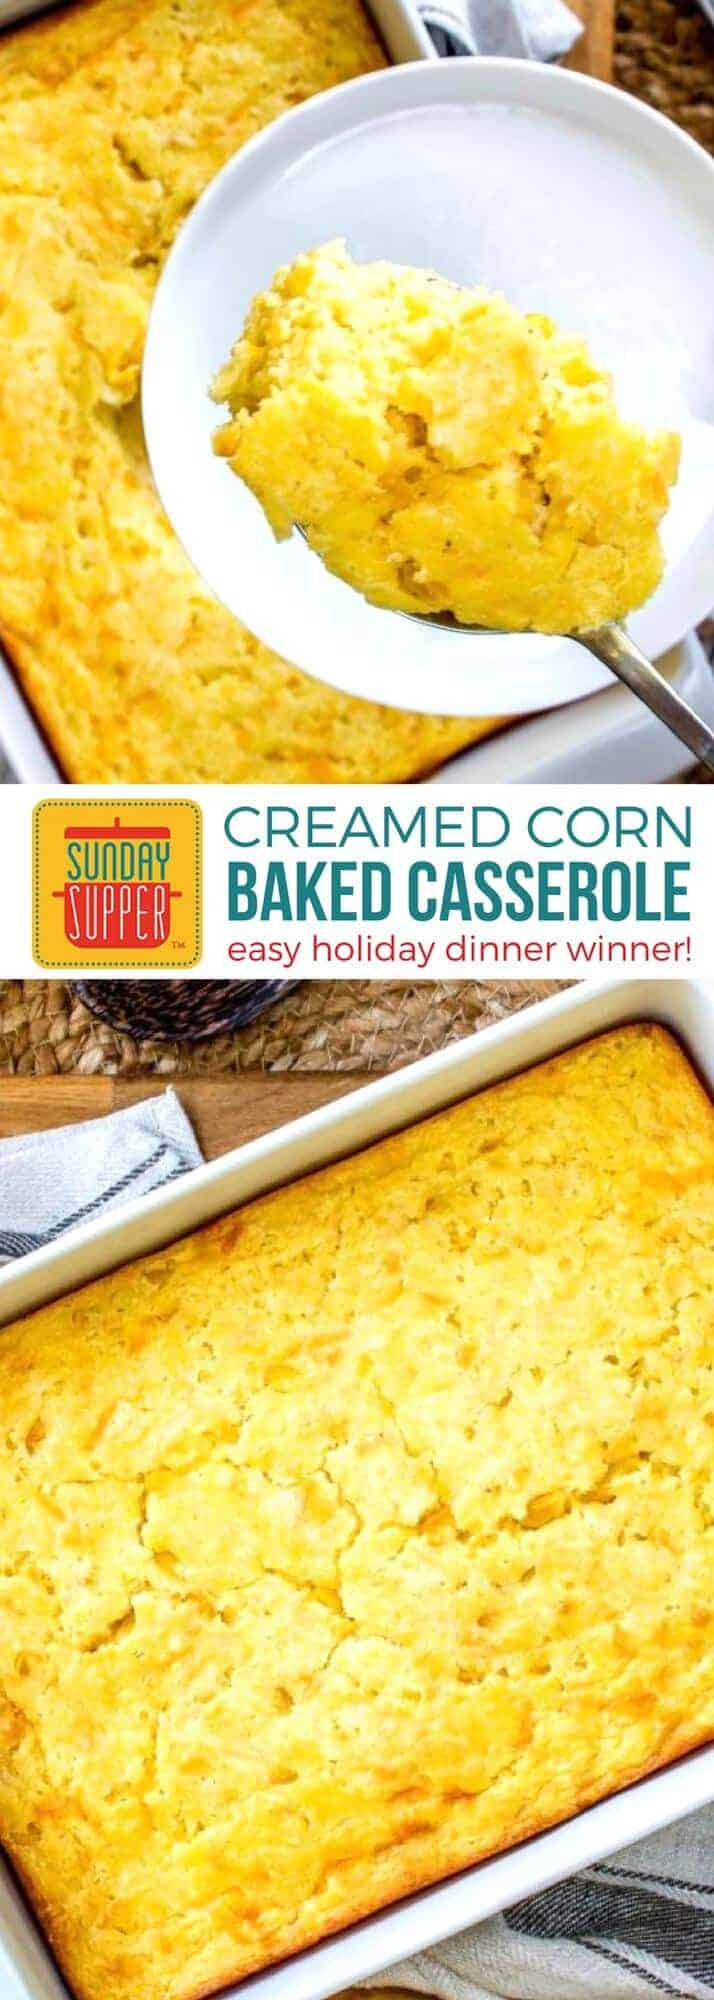 Everyone will go bananas over this holiday dinner winner! Baked Creamed Corn Casserole is easy to make with just a few ingredients & very little prep. This sweet and creamy Corn Casserole is richer & tastier and perfect for all your special occasions such as Christmas dinner and Thanksgiving dinner #SundaySupper #holidayrecipes #creamedcorn #casserolerecipes